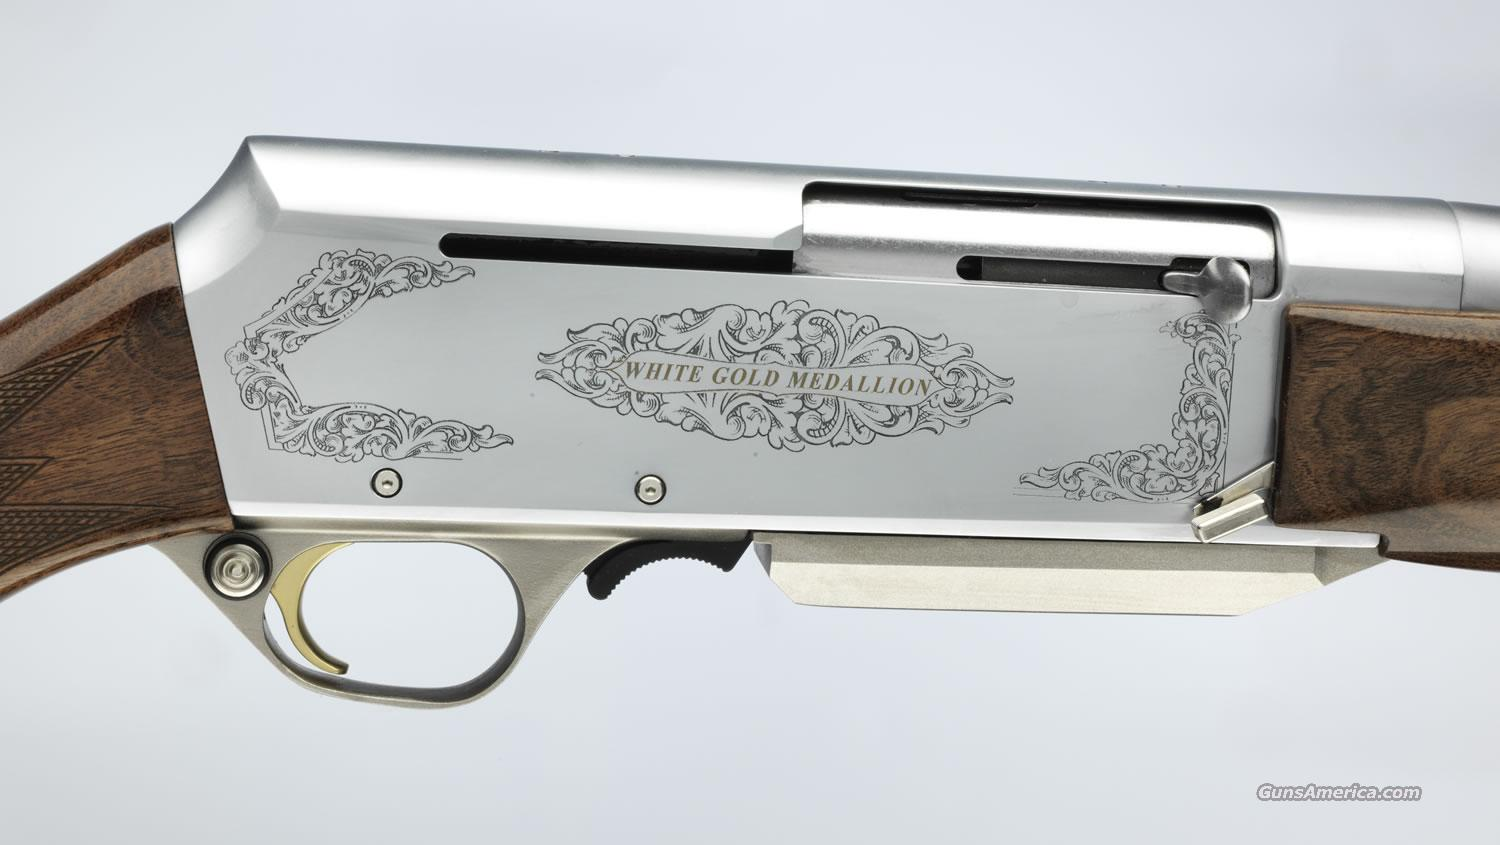 Ltd. Edition Browning BAR White Gold Medallion 30-06 Spfd.  New!    LAYAWAY OPTION     031027226  Guns > Rifles > Browning Rifles > Semi Auto > Hunting